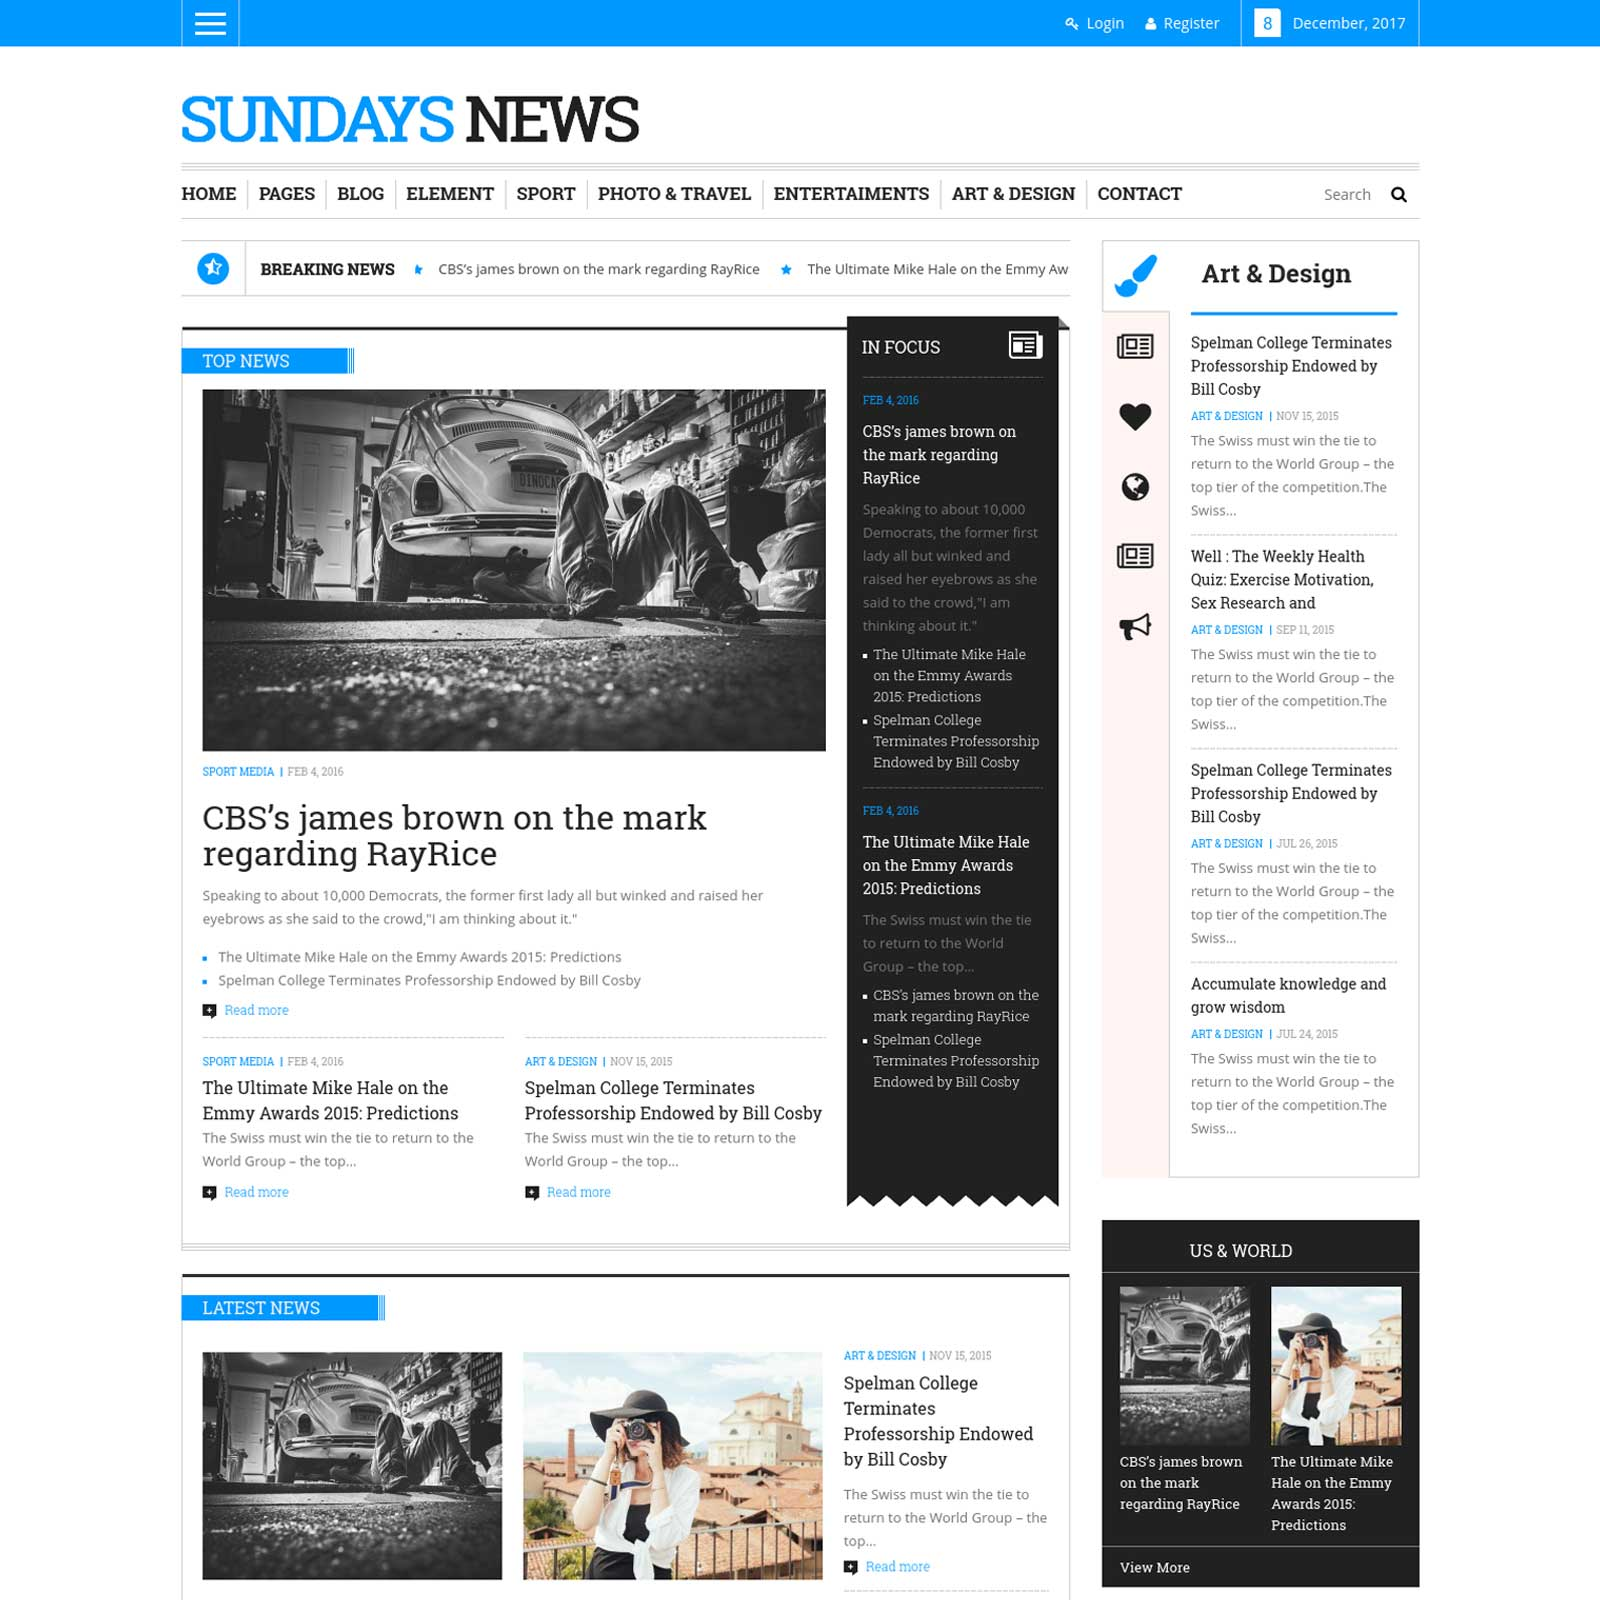 SUNDAY NEWS MAGAZINE WORDPRESS THEME